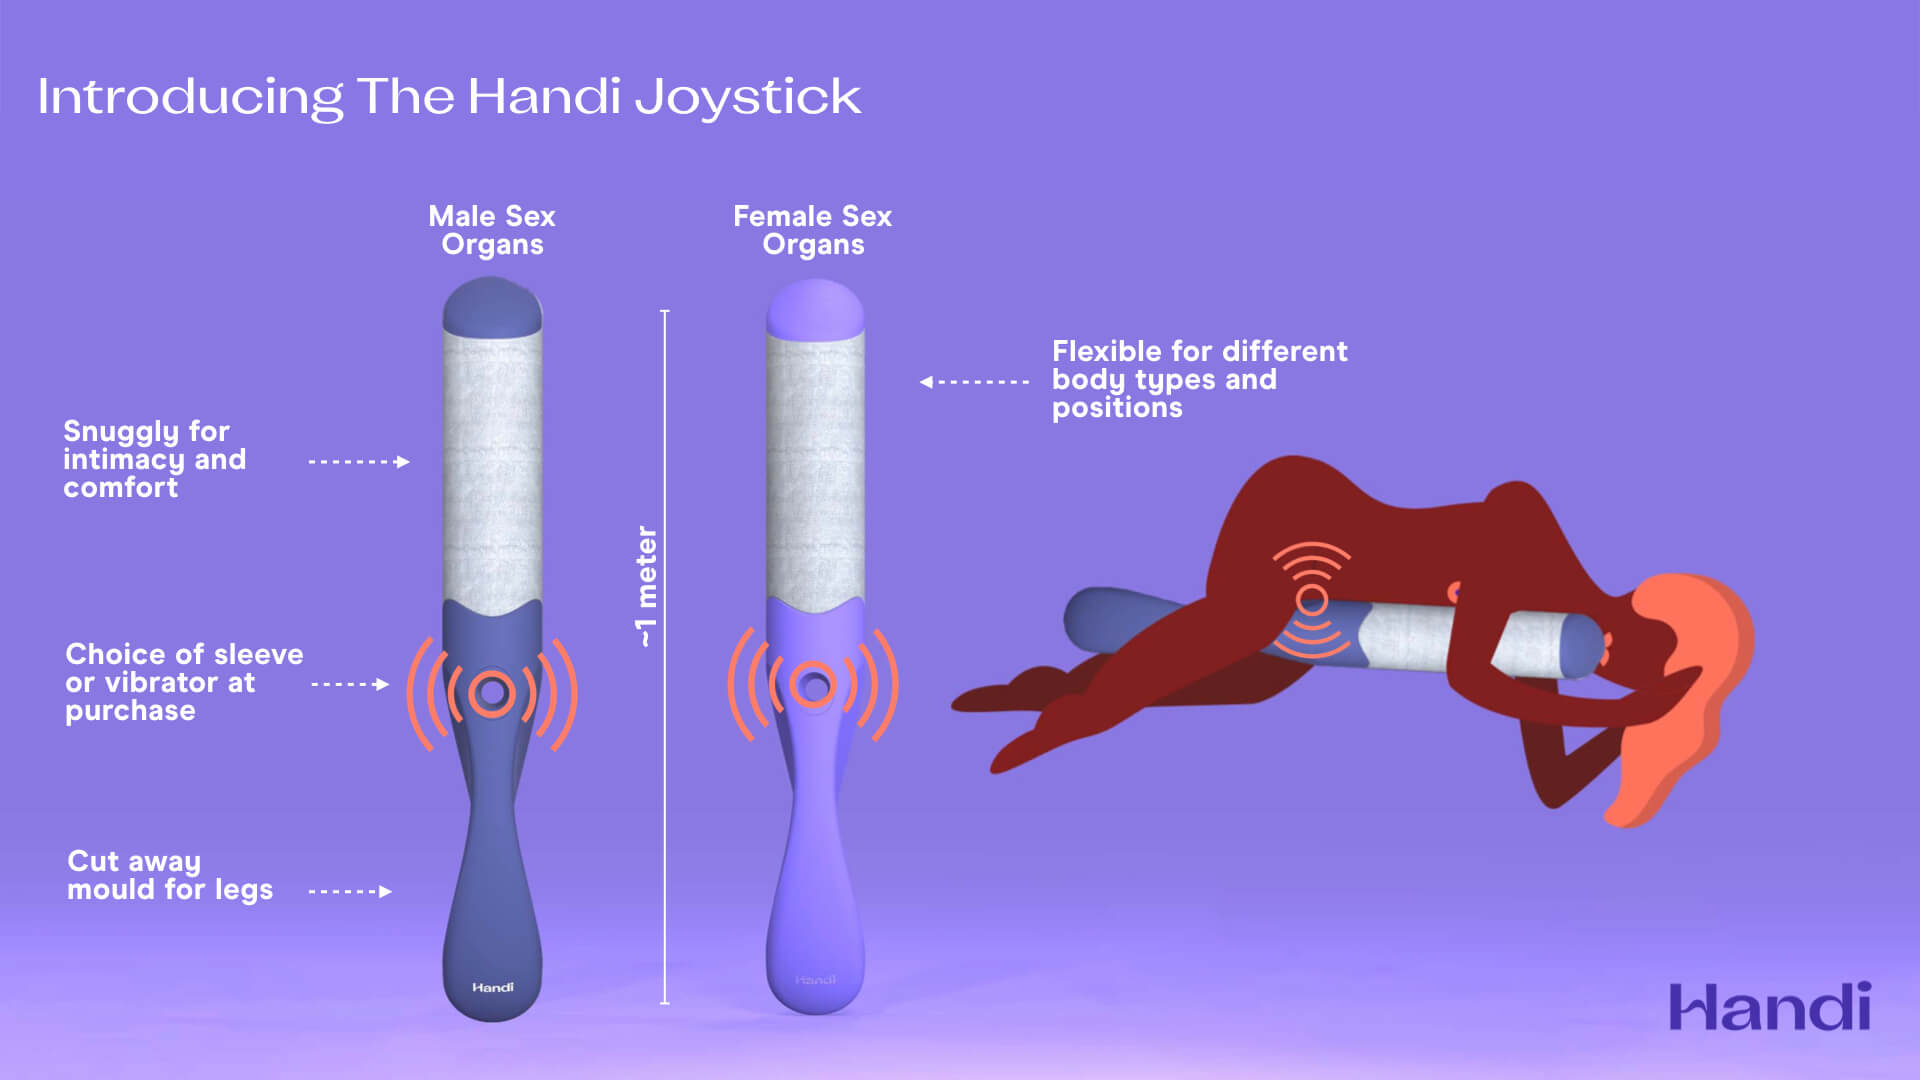 Handi Joystick sex toy for disabled people